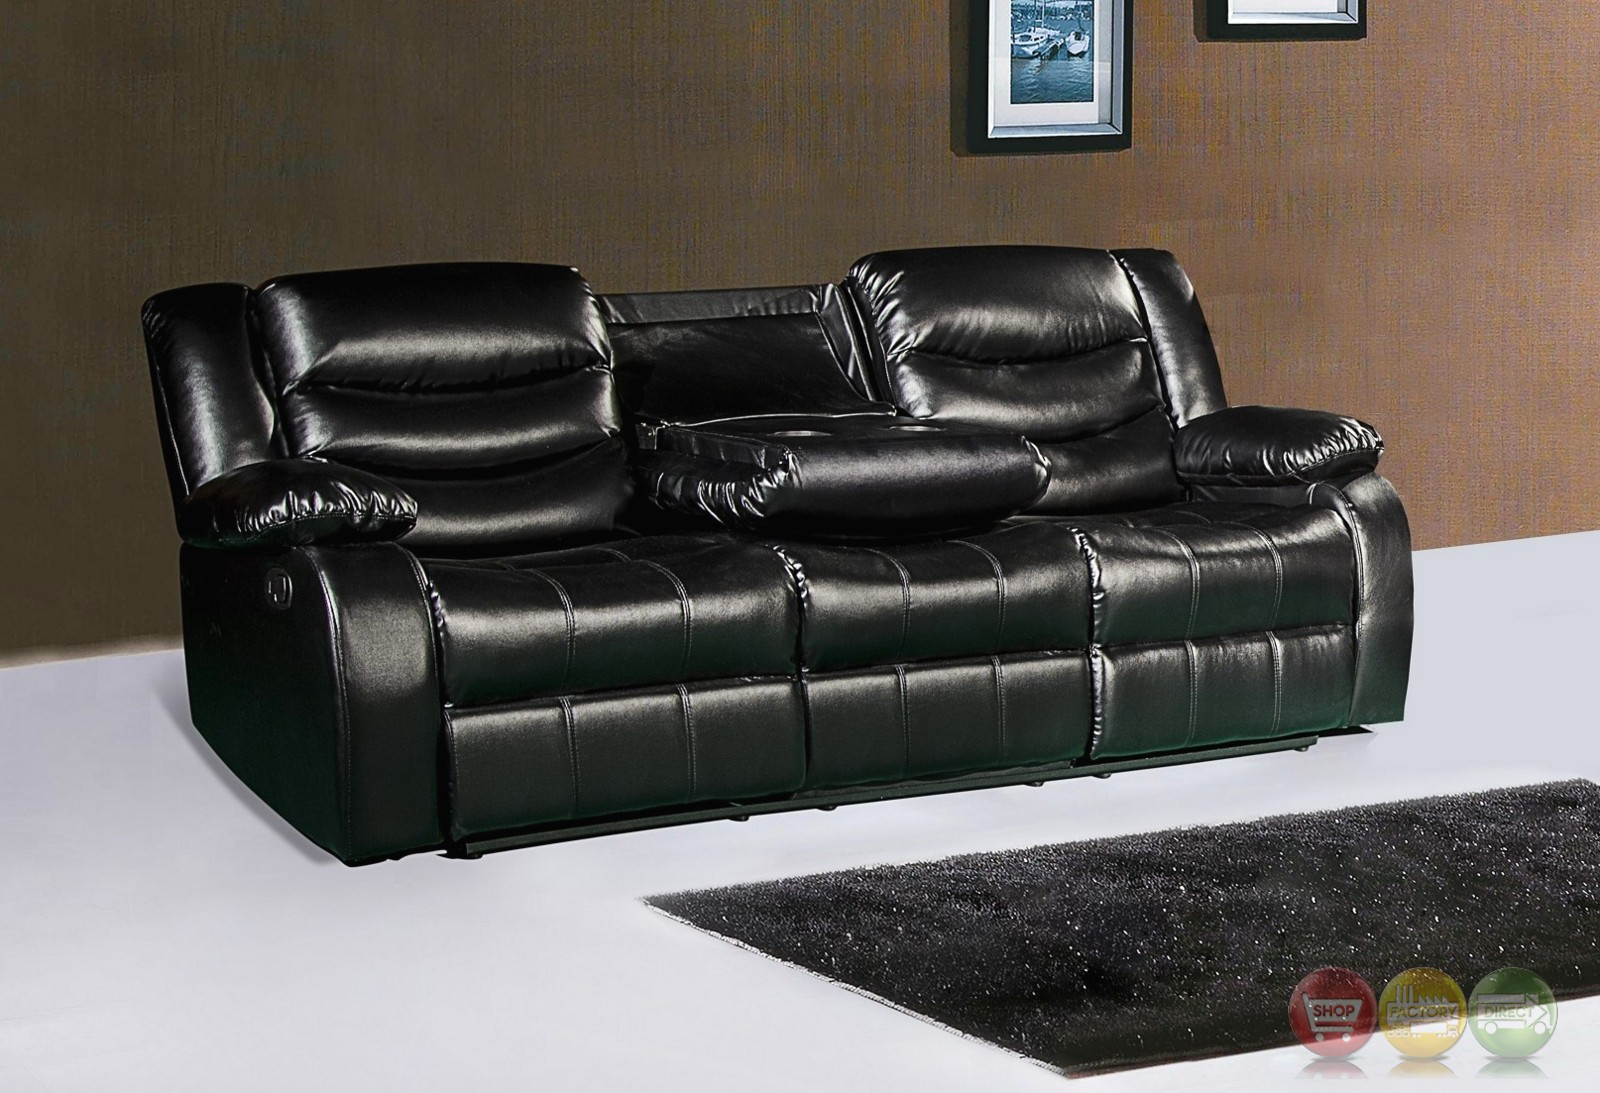 644bl black leather reclining sofa with drop down console